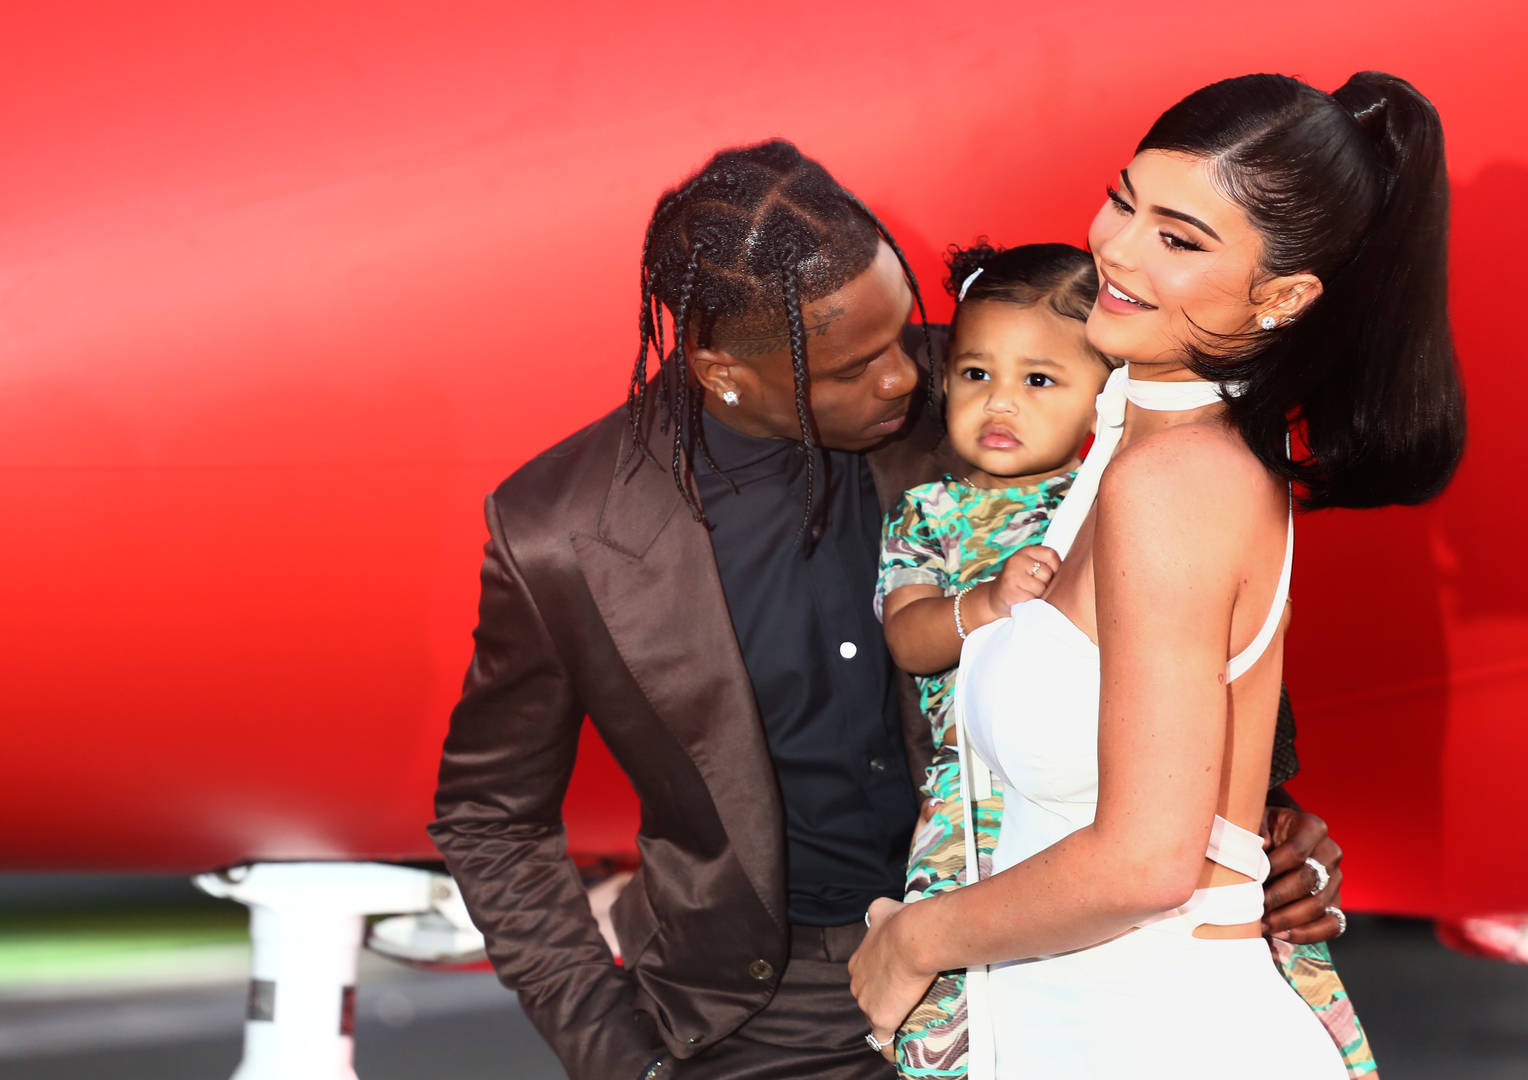 Kardashian Family Reportedly Want Kylie Jenner & Travis Scott To Get Back Together